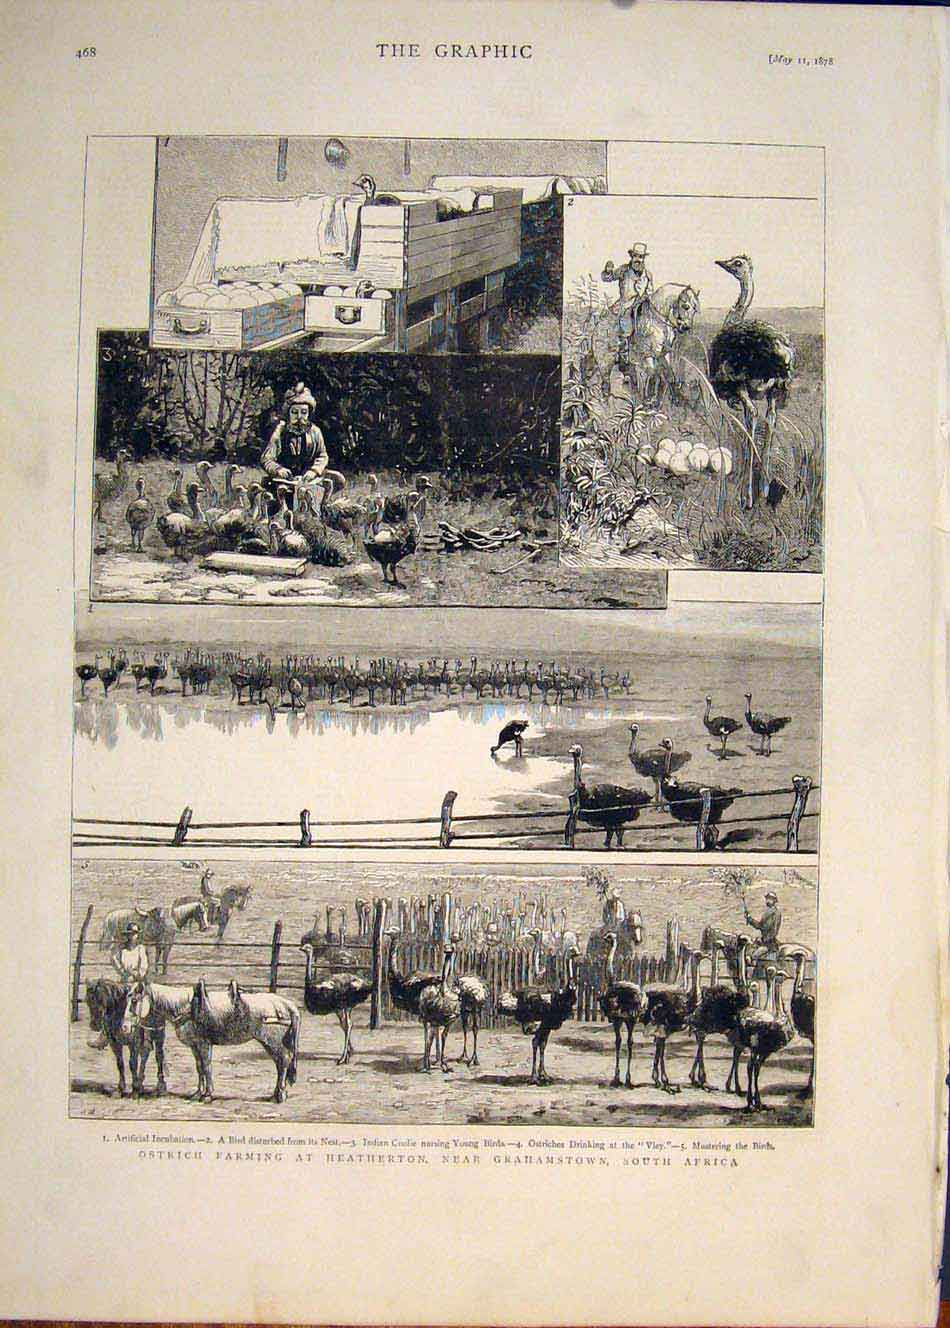 [Print Ostrich Farm Heatherton Grahamstown South Africa 1878 68Mbb0 Old Original]